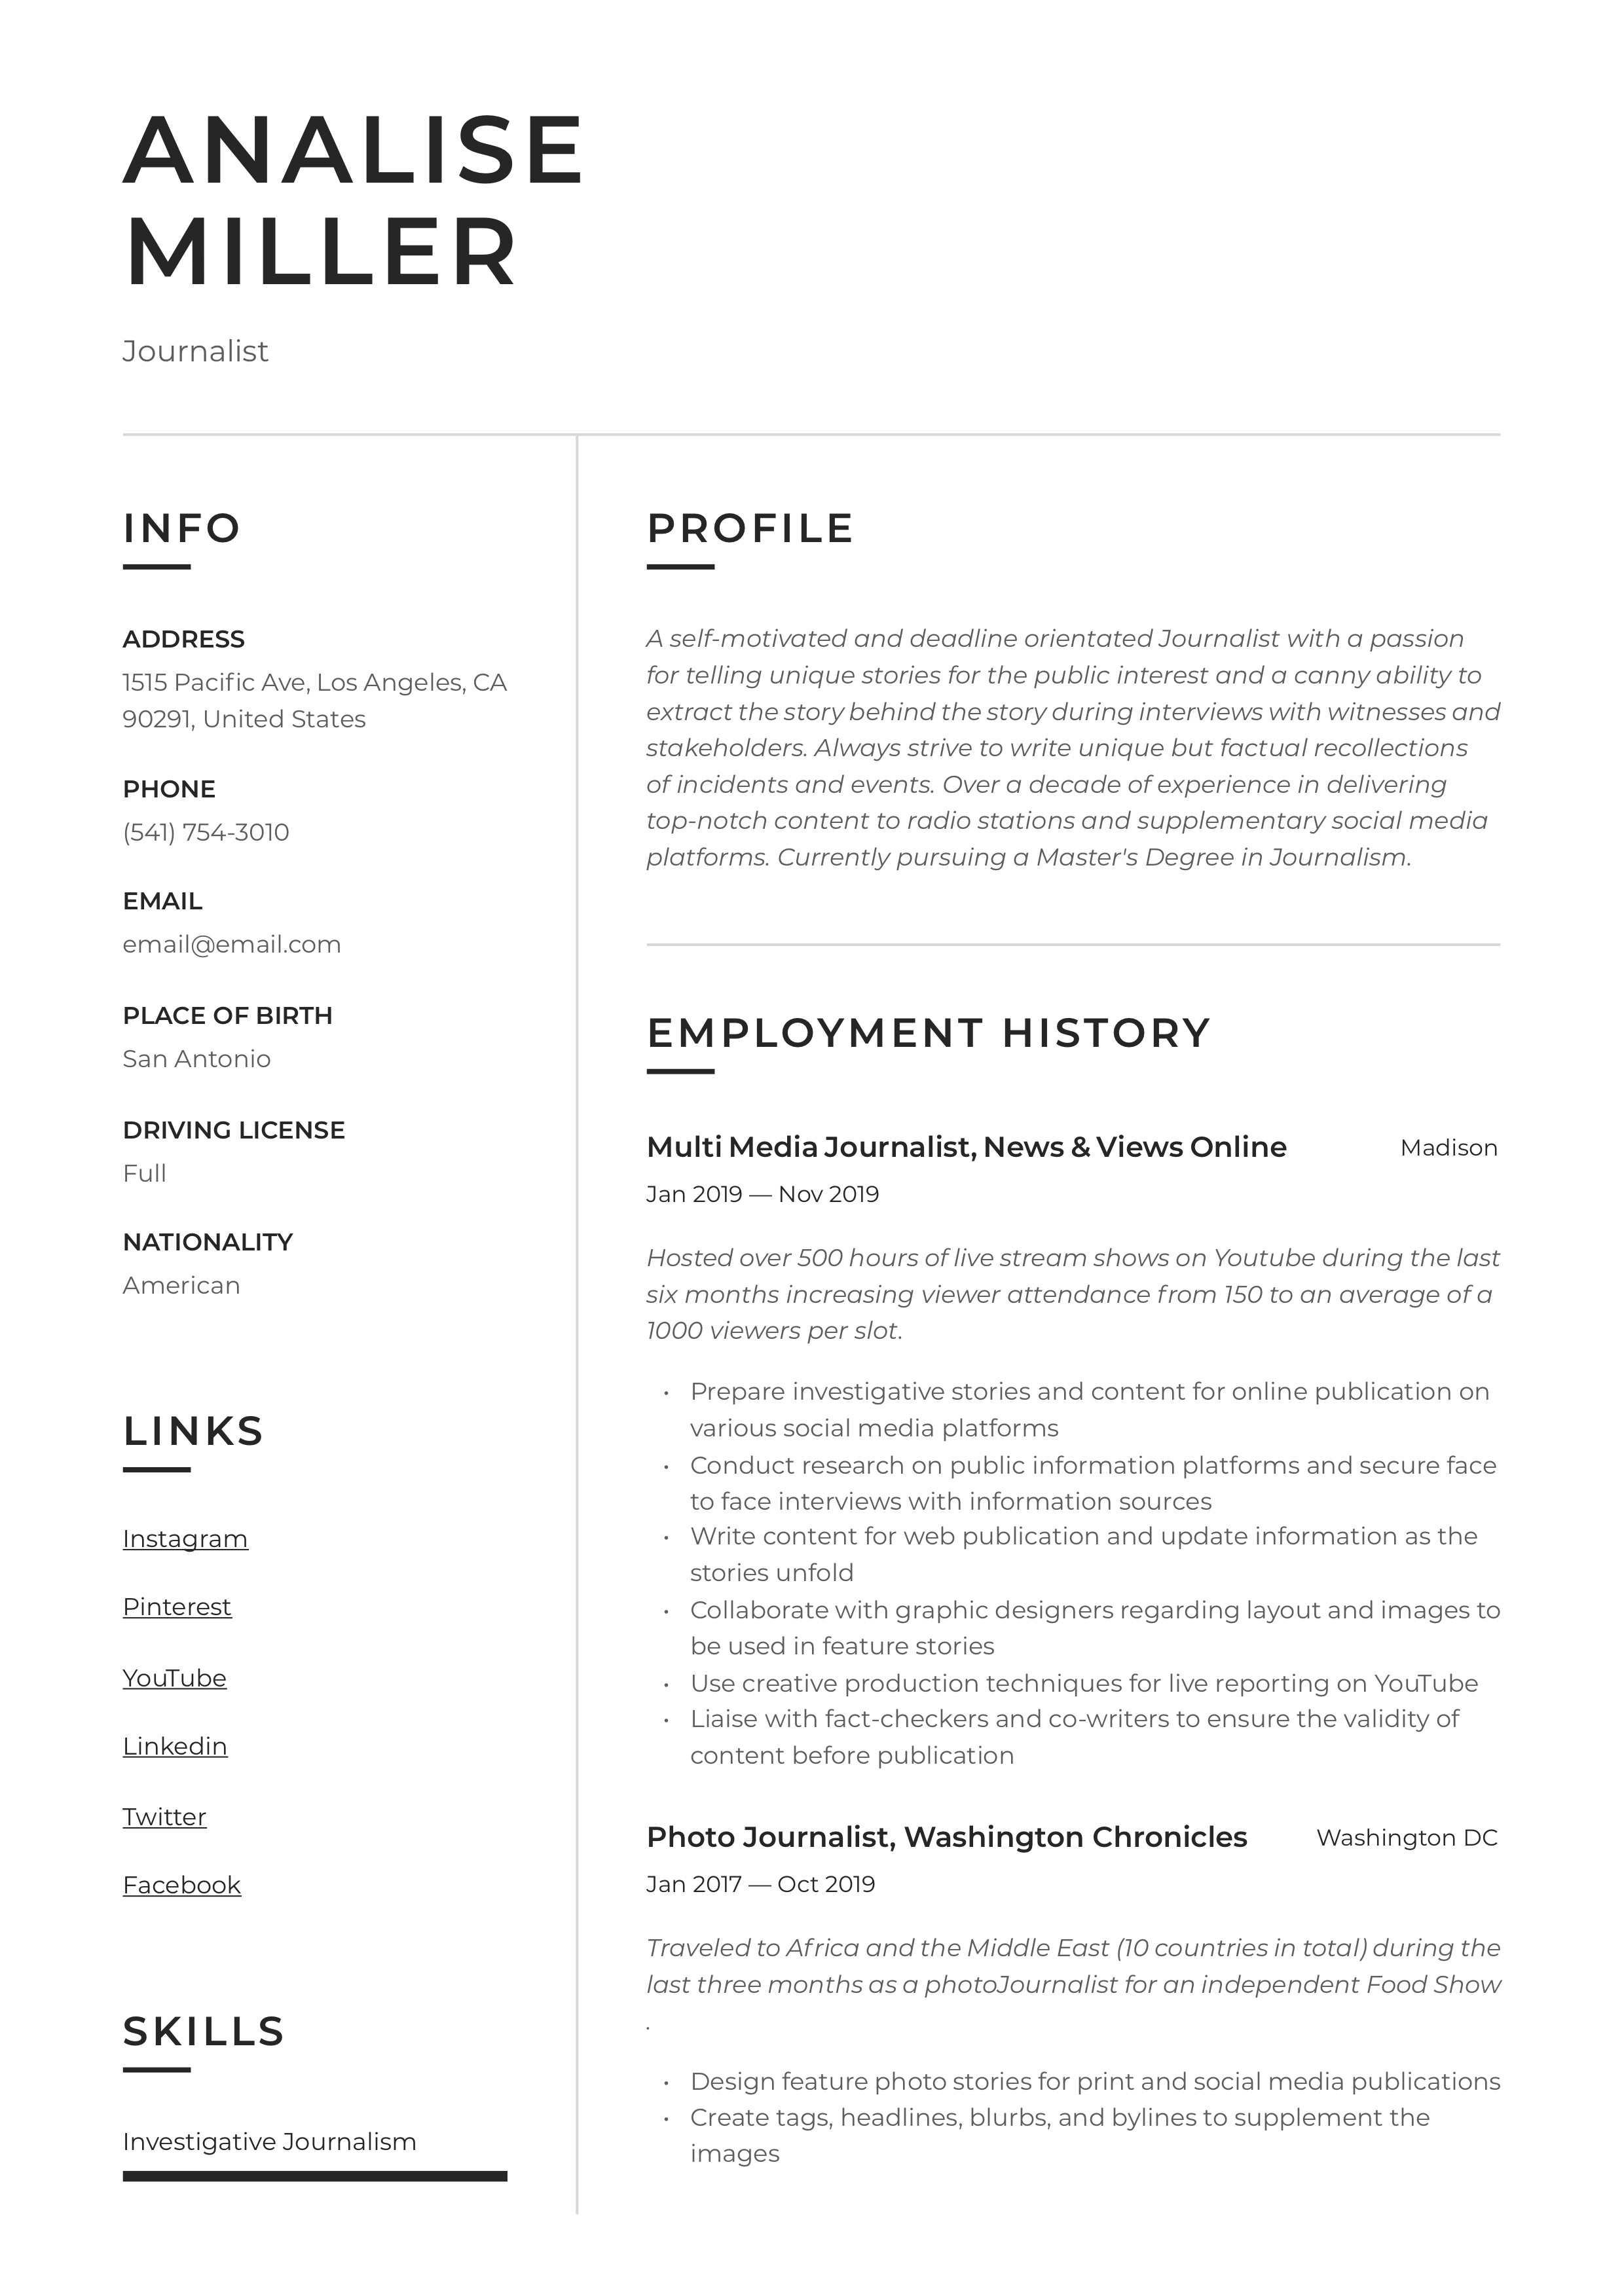 Journalist resume examples top application letter writer site usa